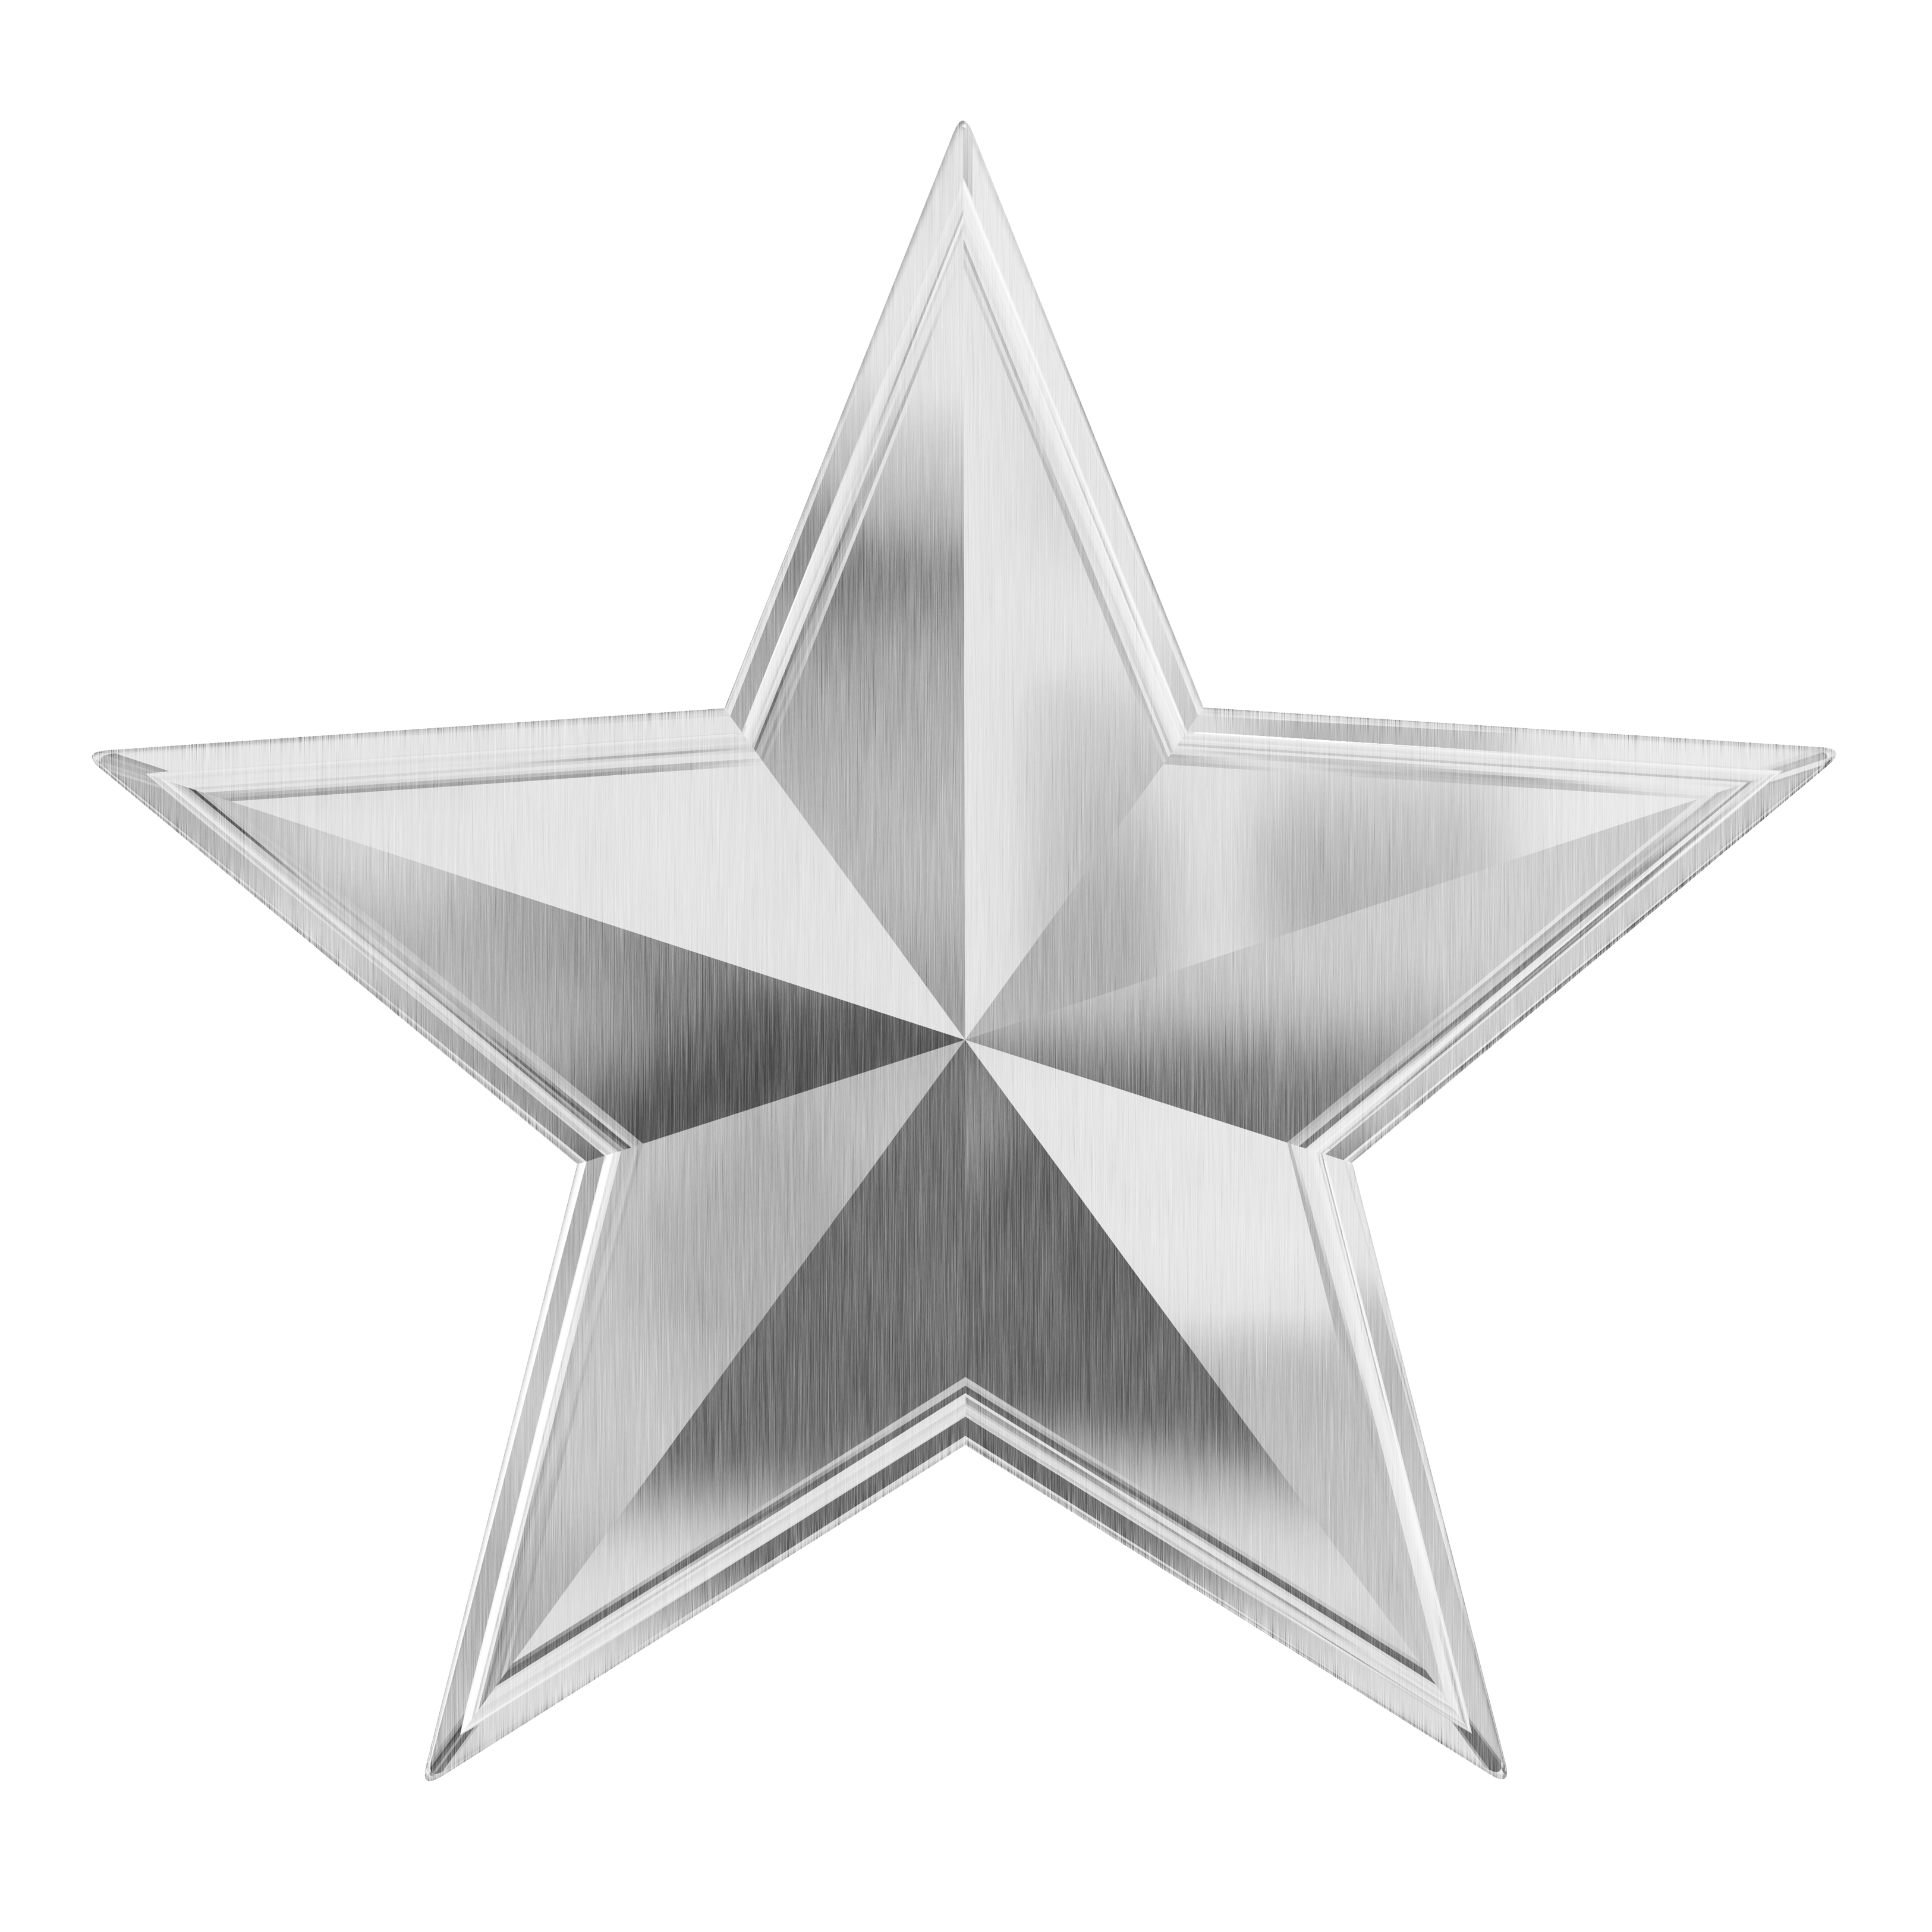 Silver Star PNG Image.